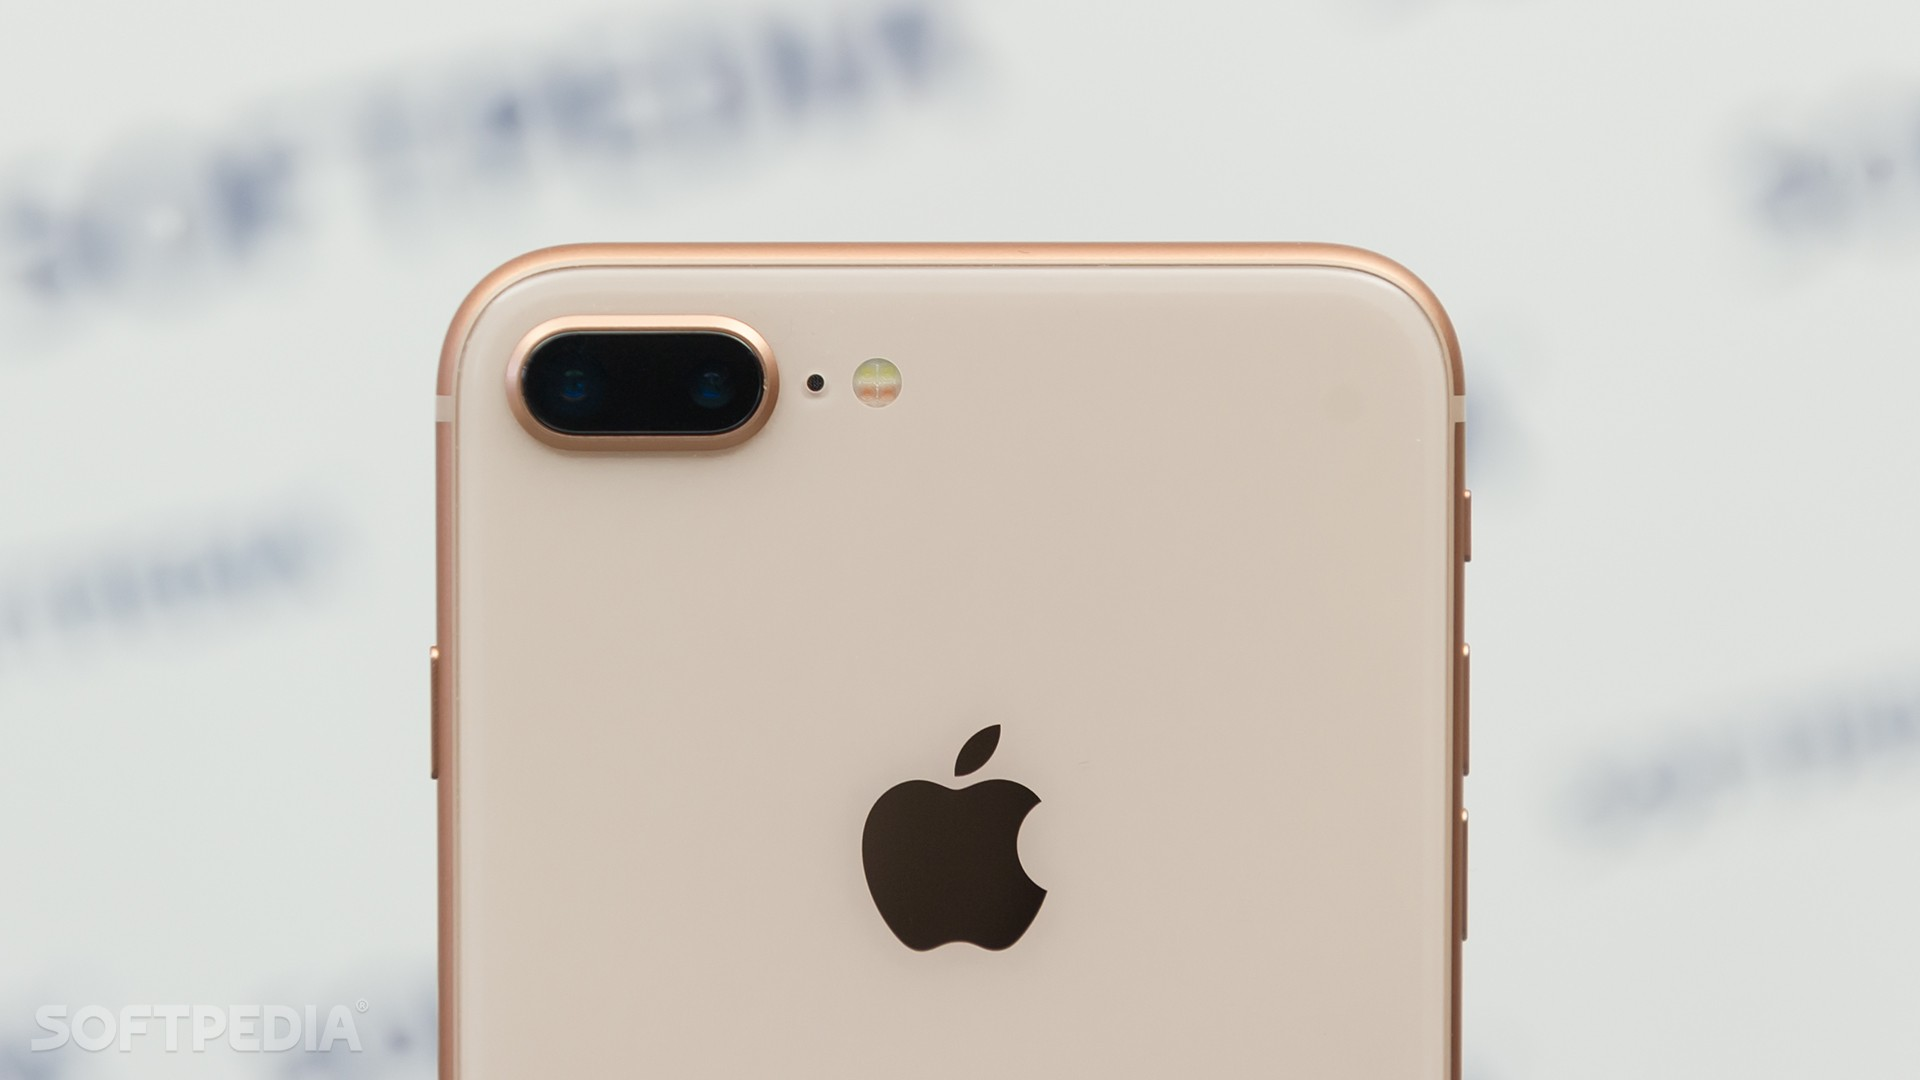 iPhone Hacking Tools Used by the Police Sold Online for Just